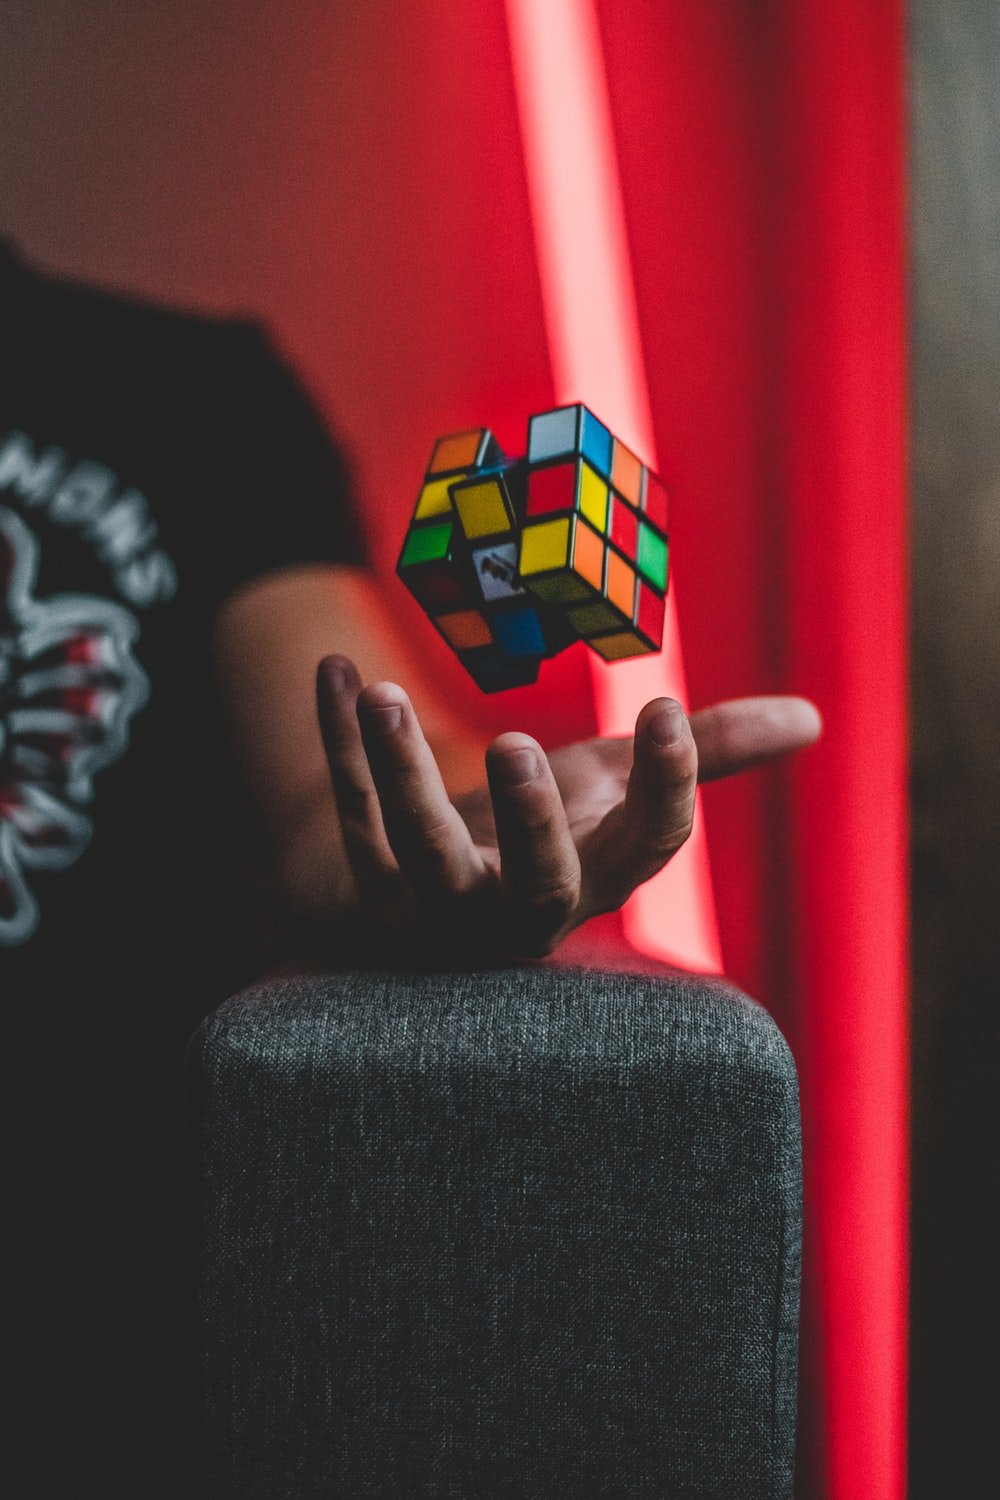 person tossing 3x3 Rubik's cube